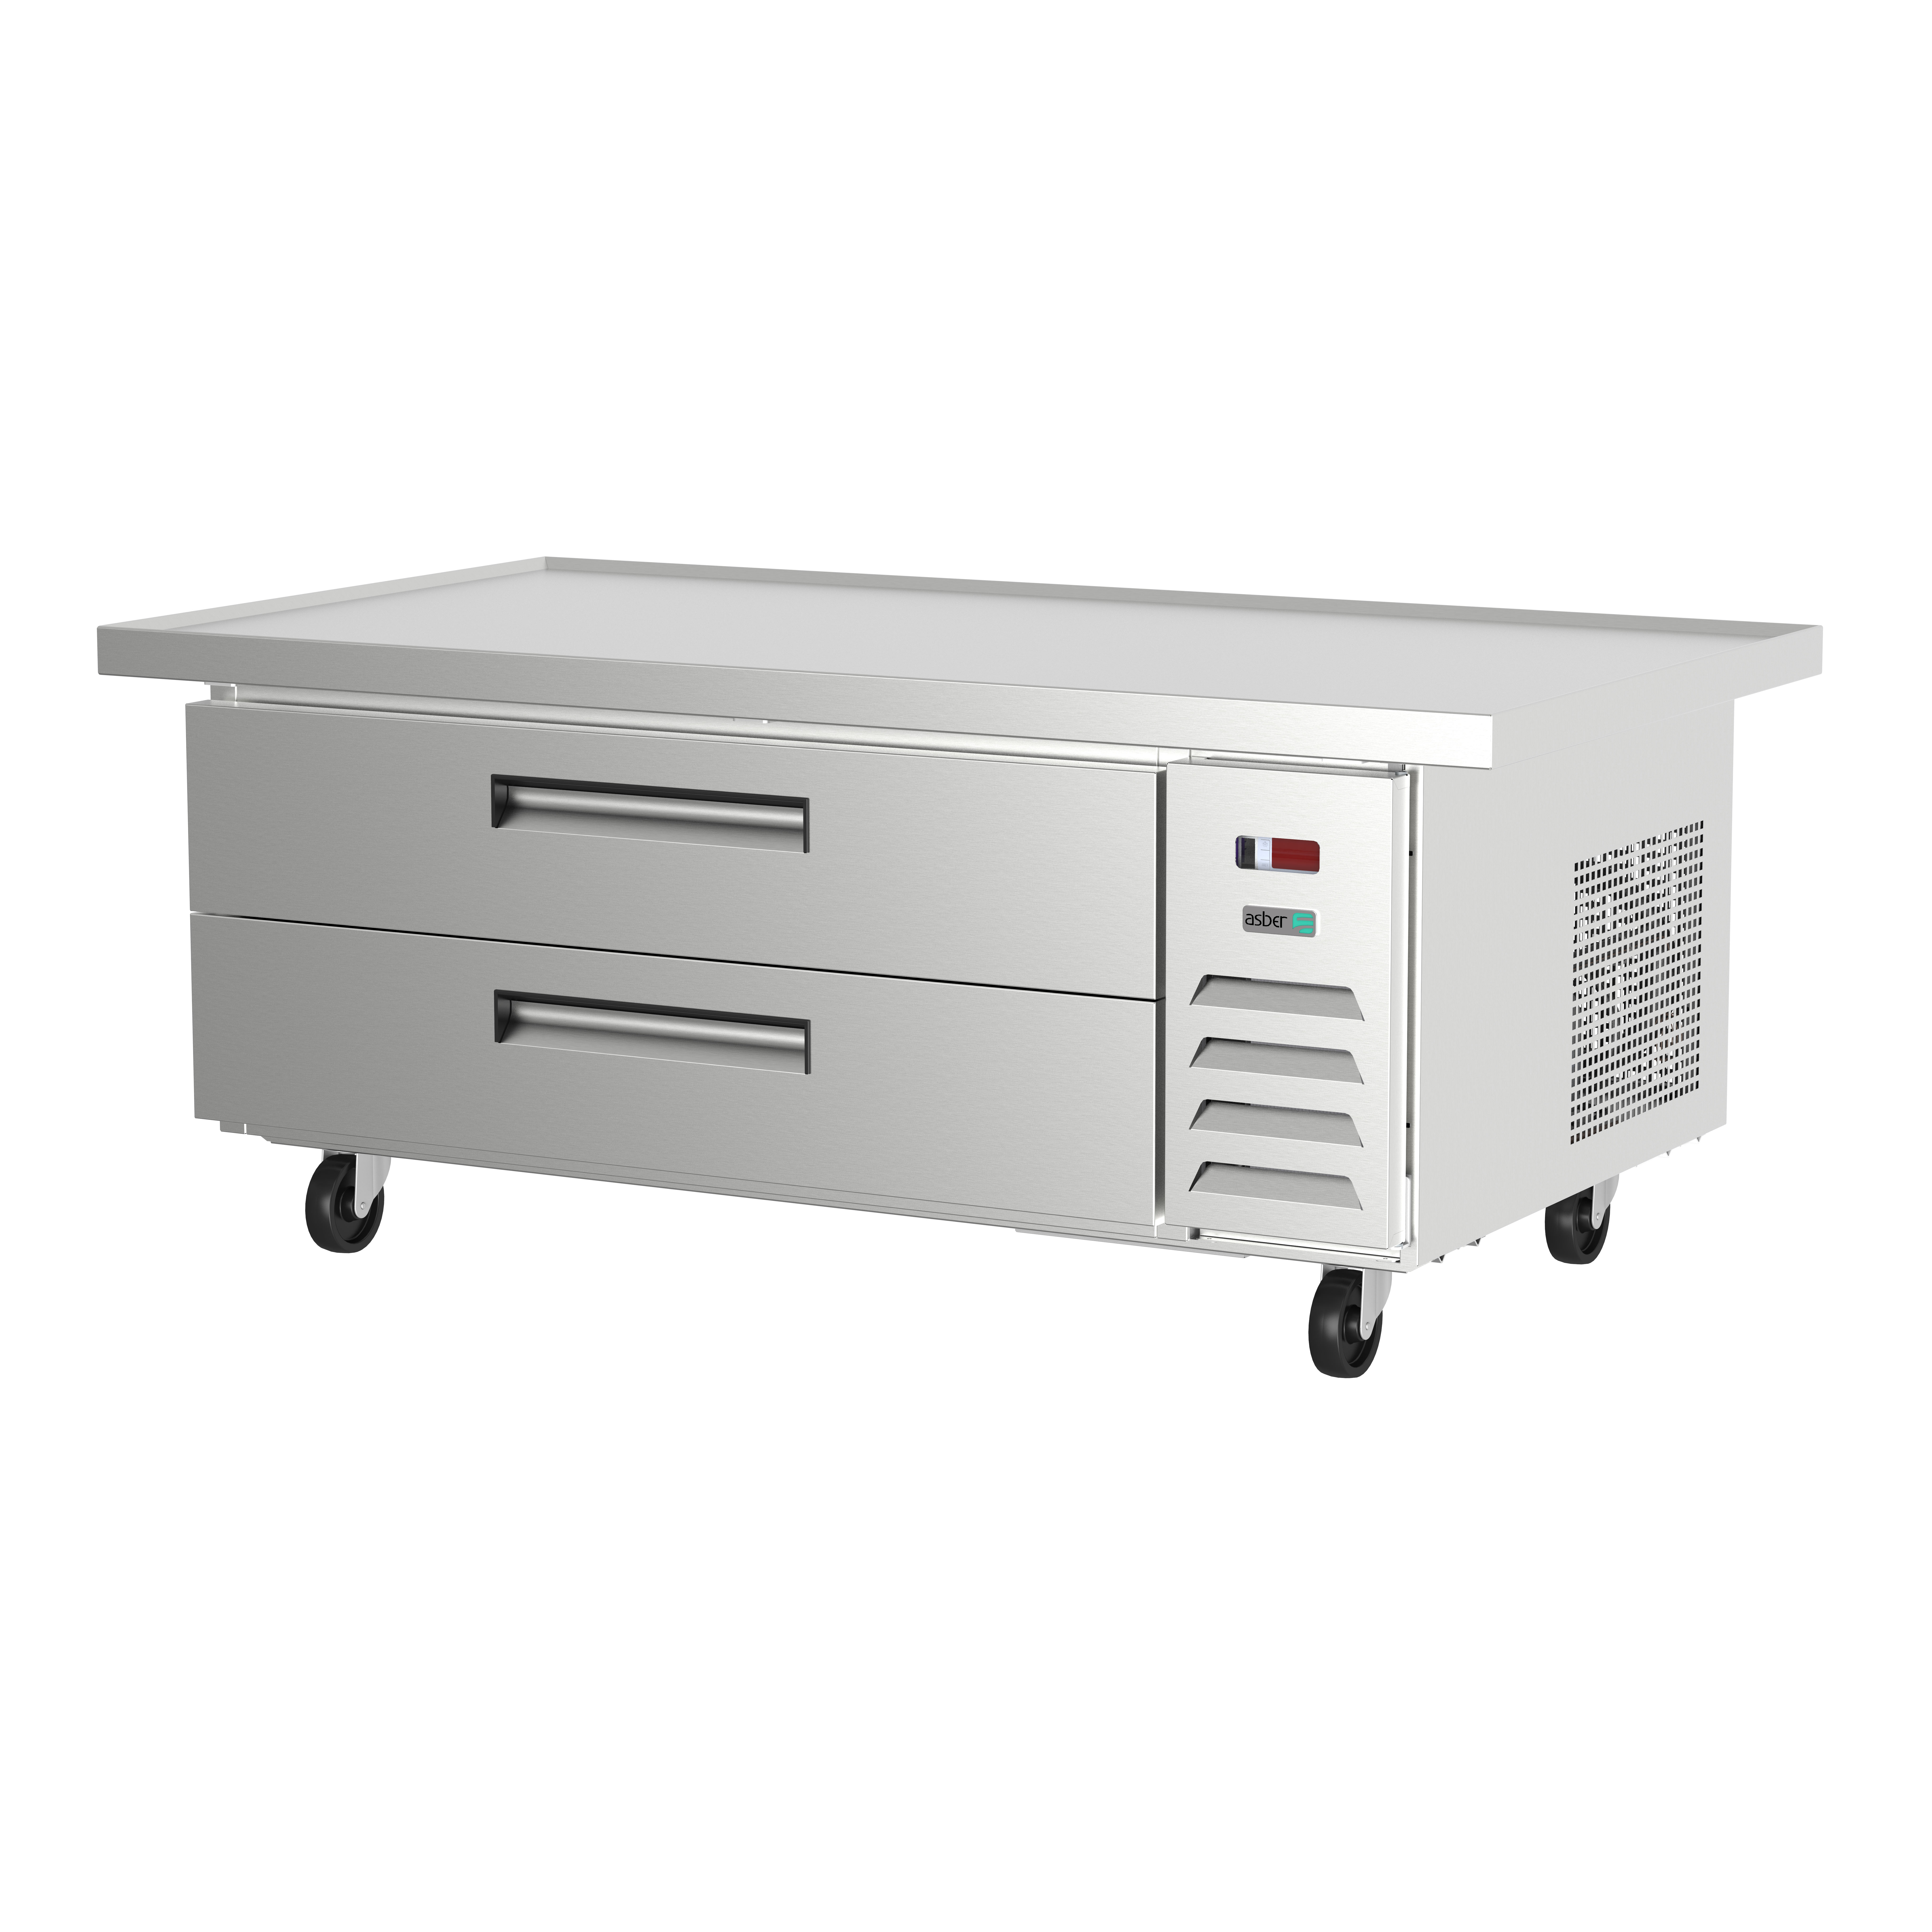 Asber ACBR-52-60 equipment stand, refrigerated base